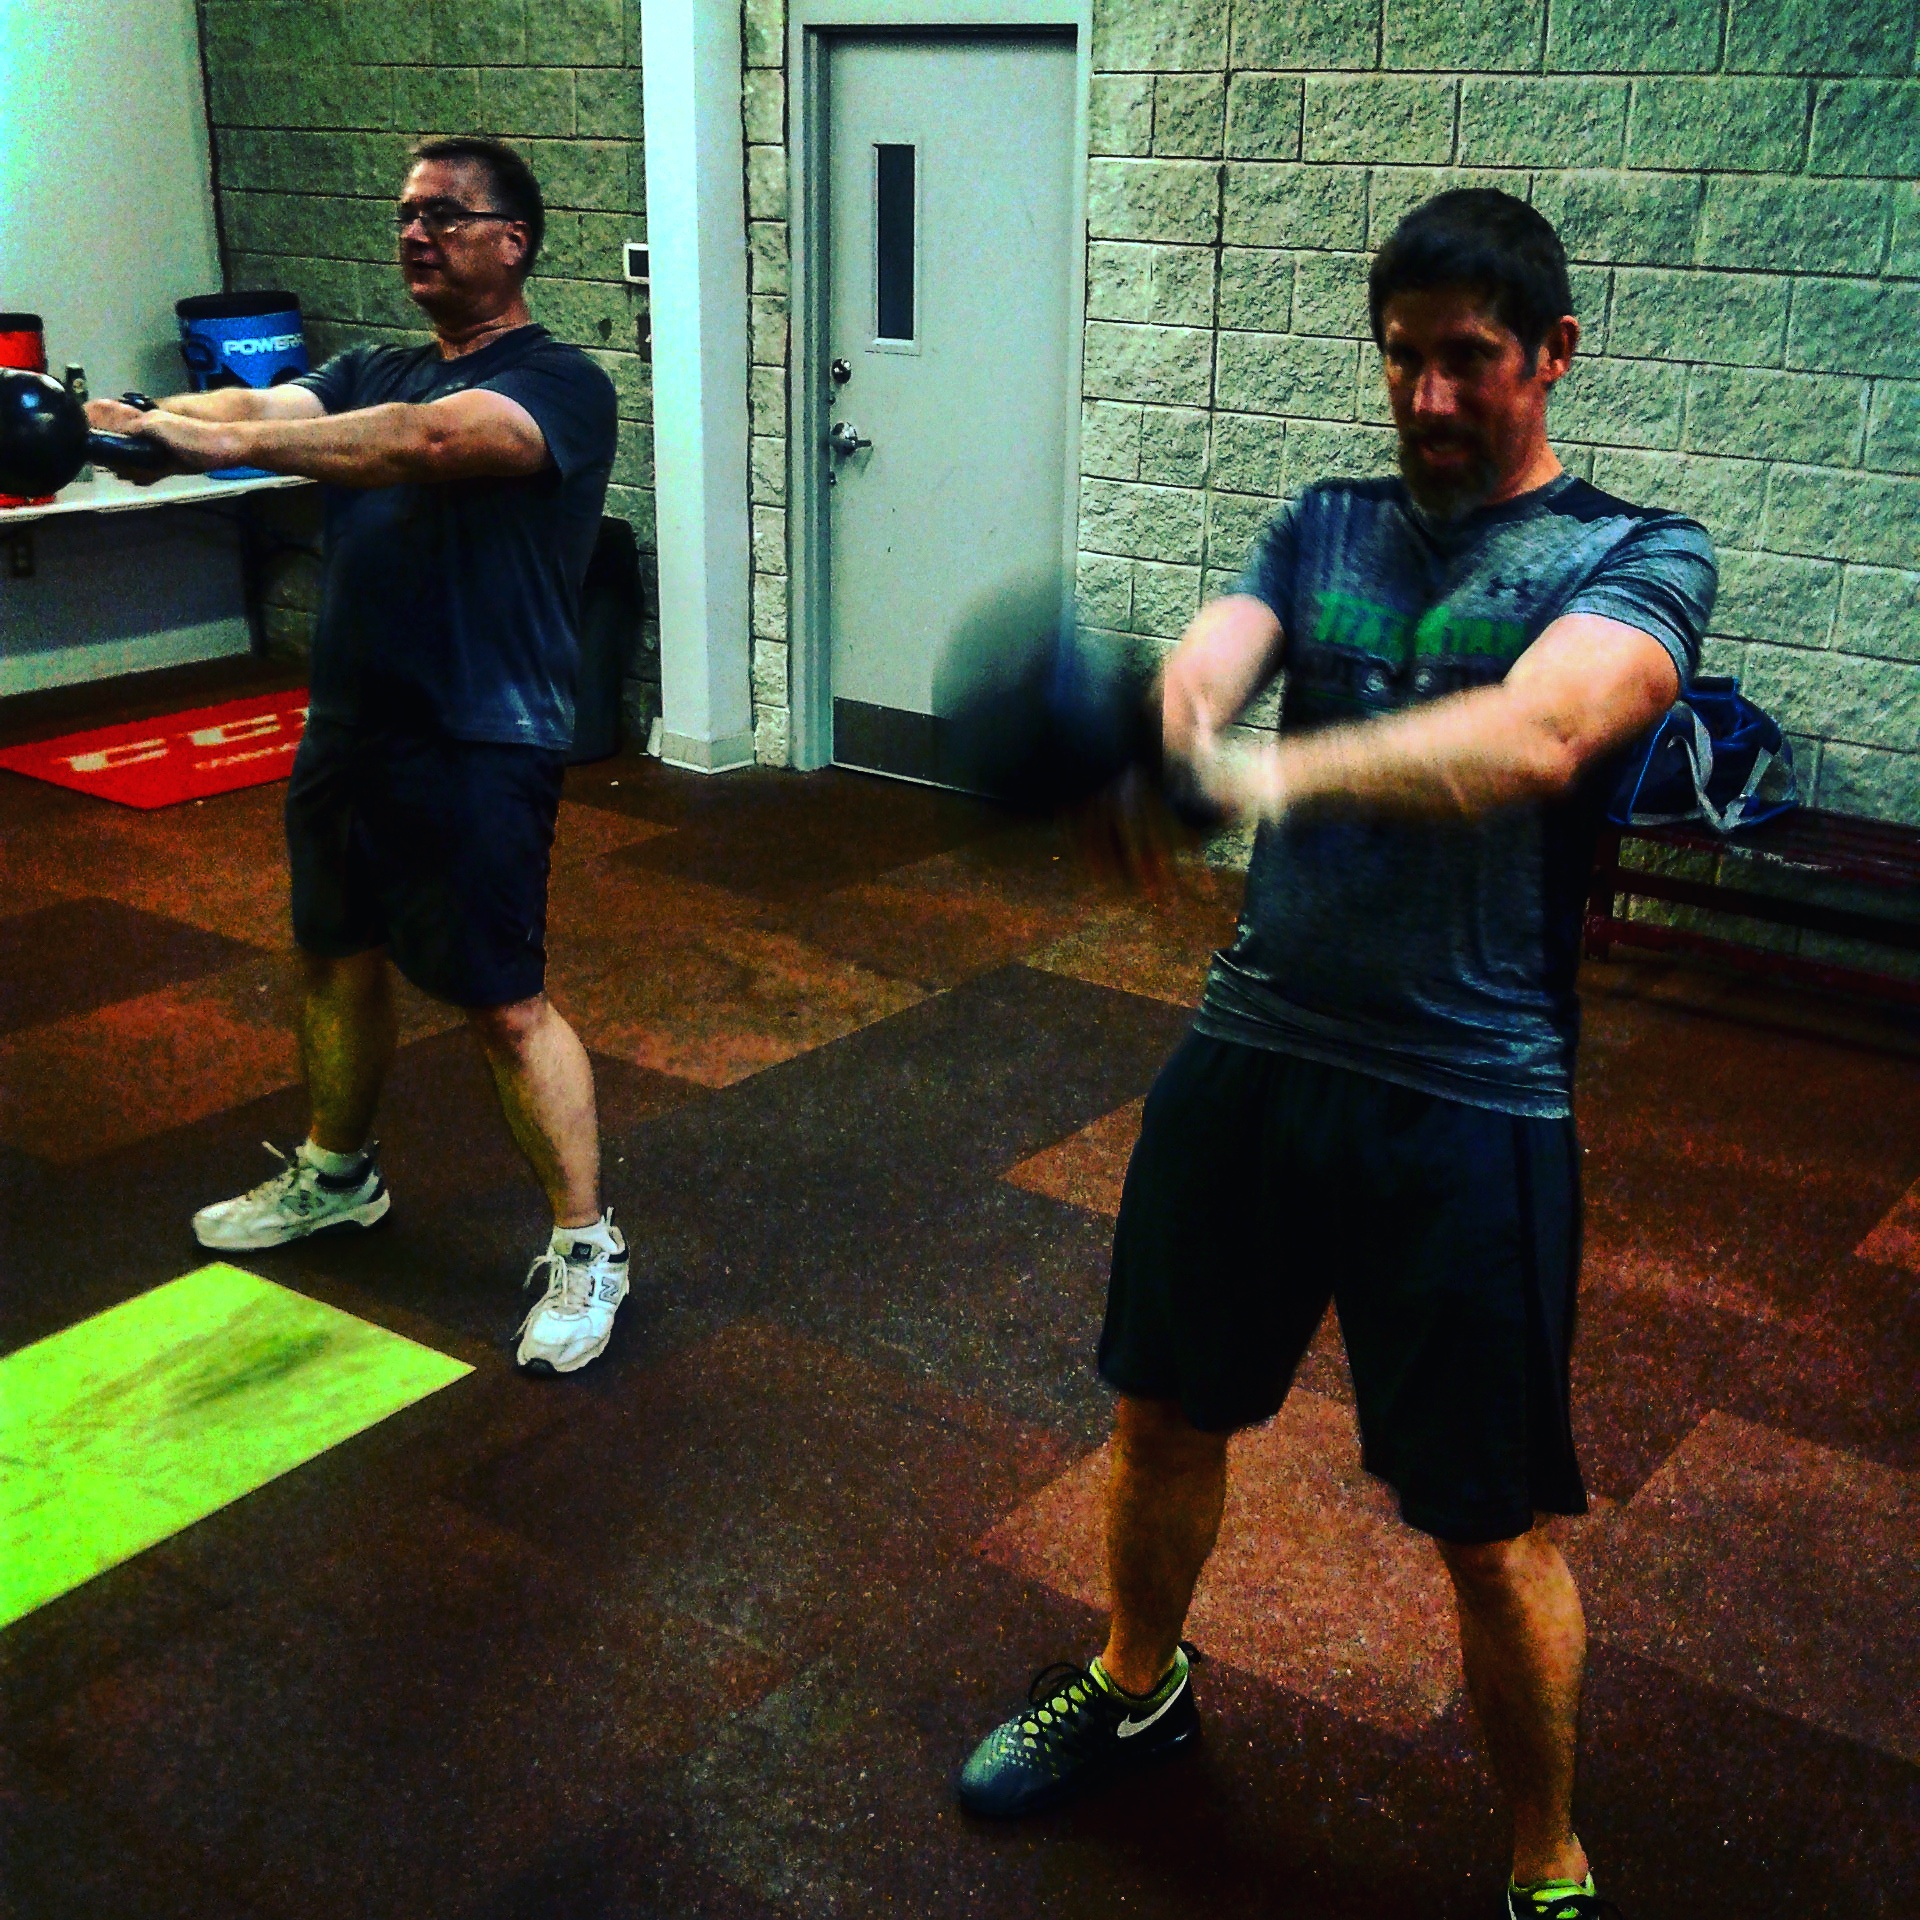 Honing Strength: The Importance Of Reaction And Coordinated Movement